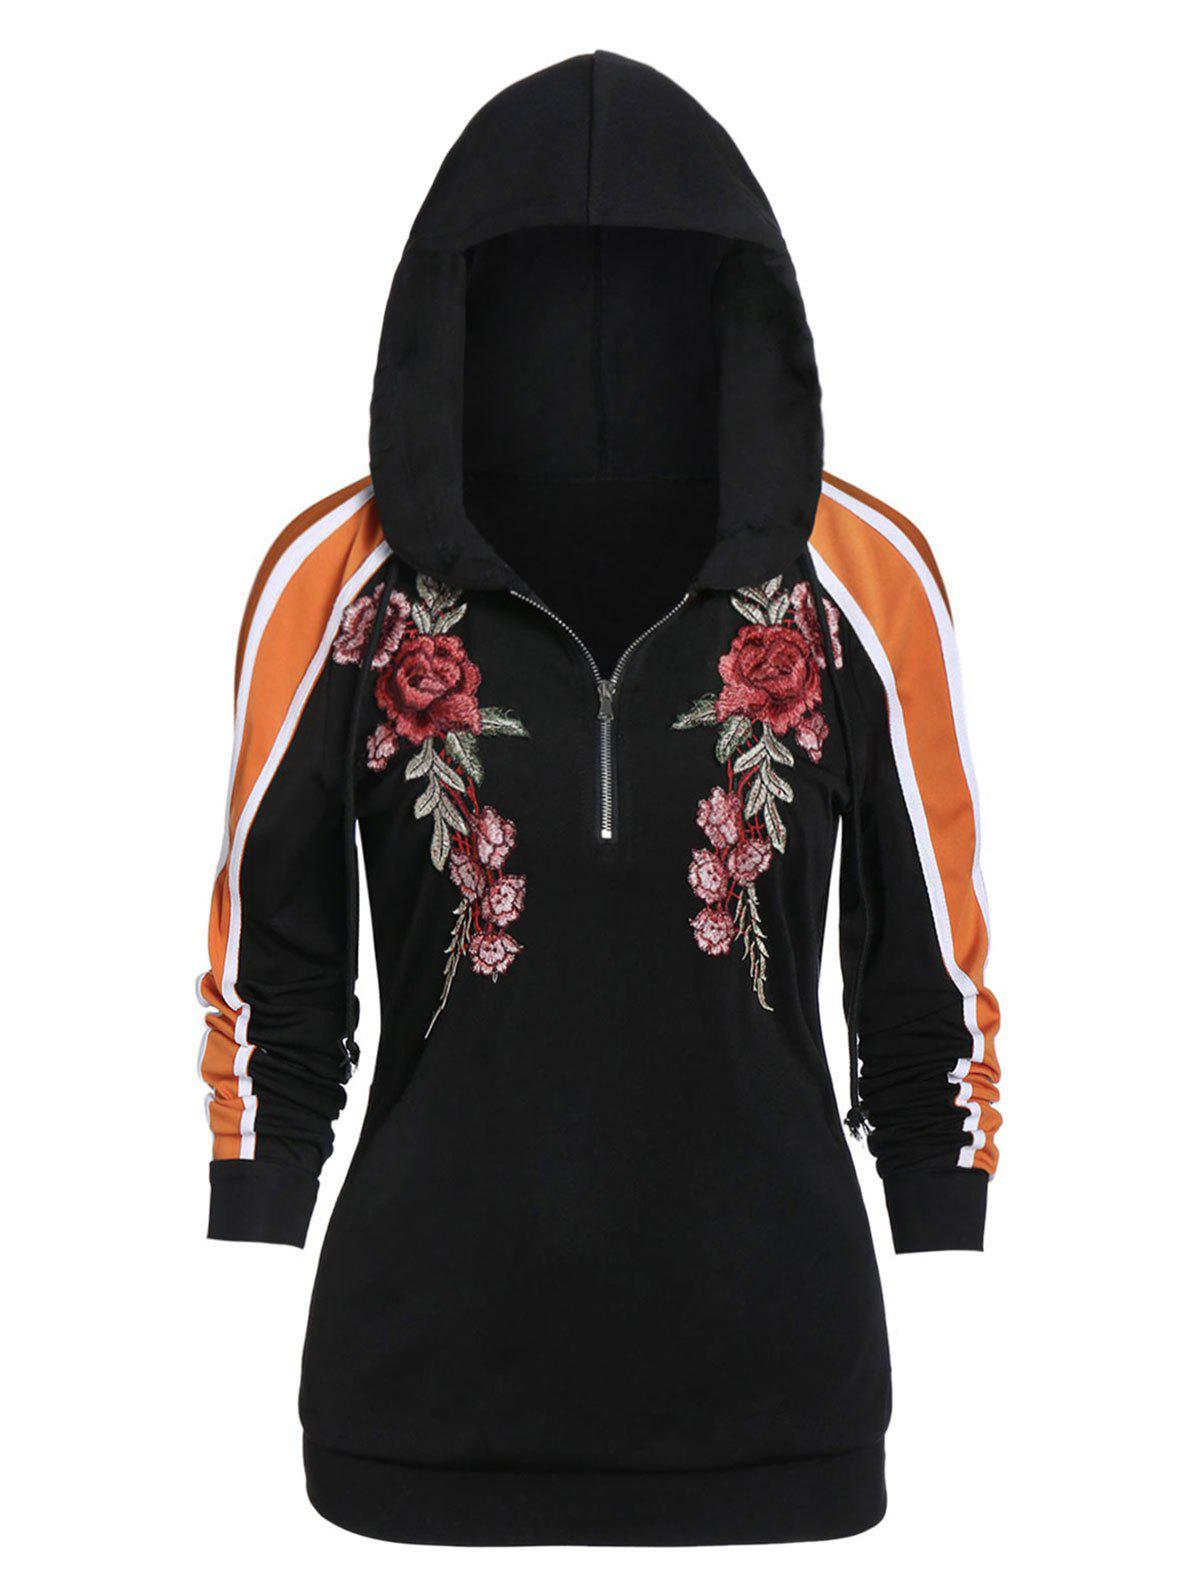 New Zippered Long Sleeve Embroidered Hoodie